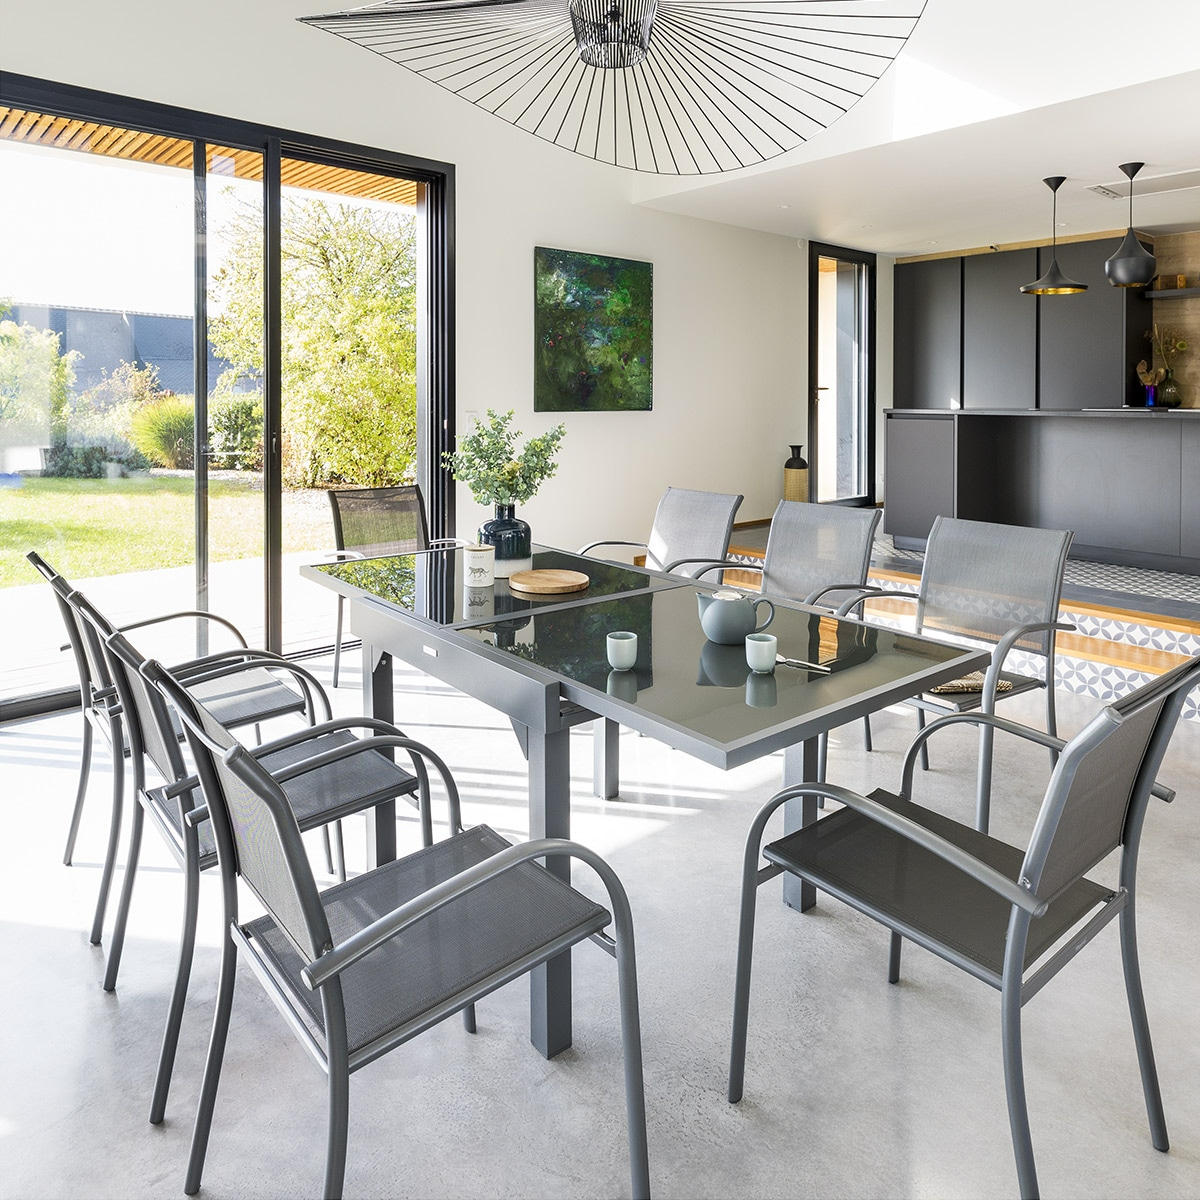 Table de jardin extensible Piazza Anthracite & Graphite Hespéride 8 ...